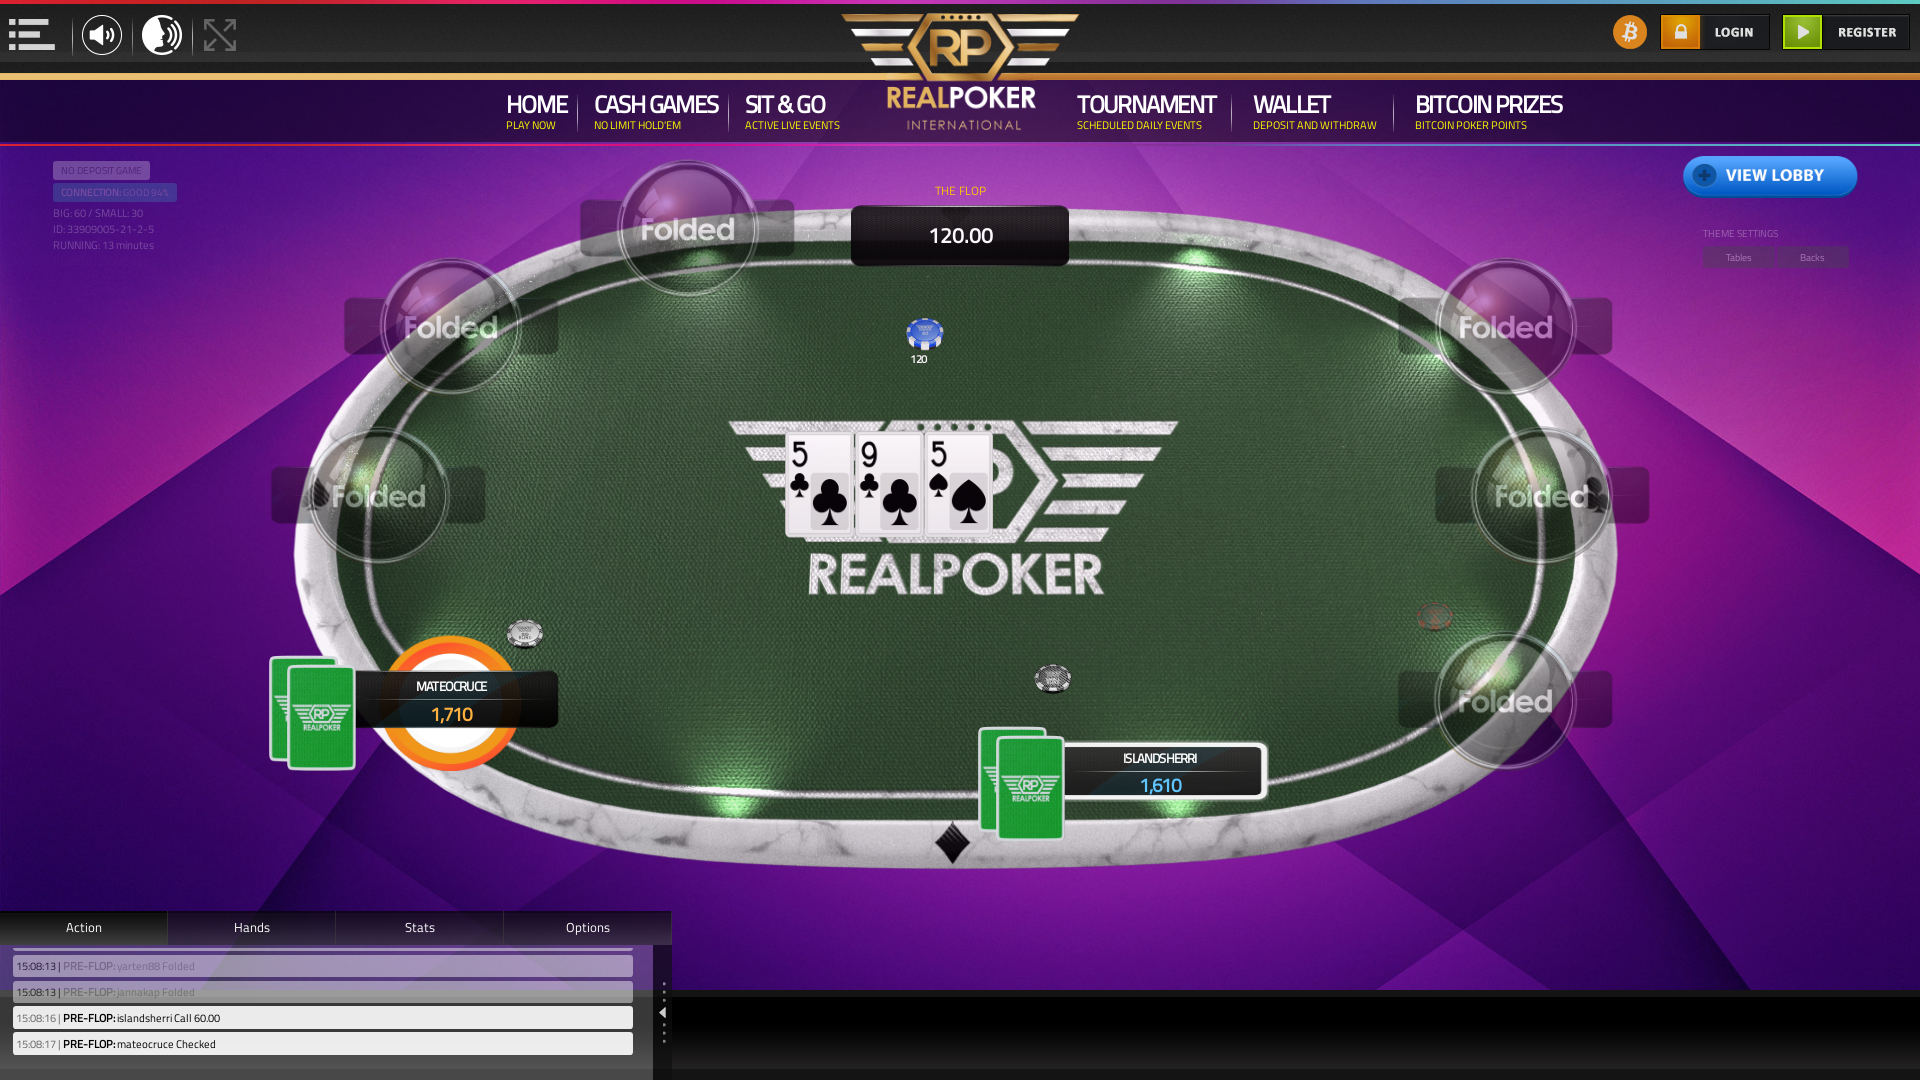 Caracas poker table on a 10 player table in the 13th minute